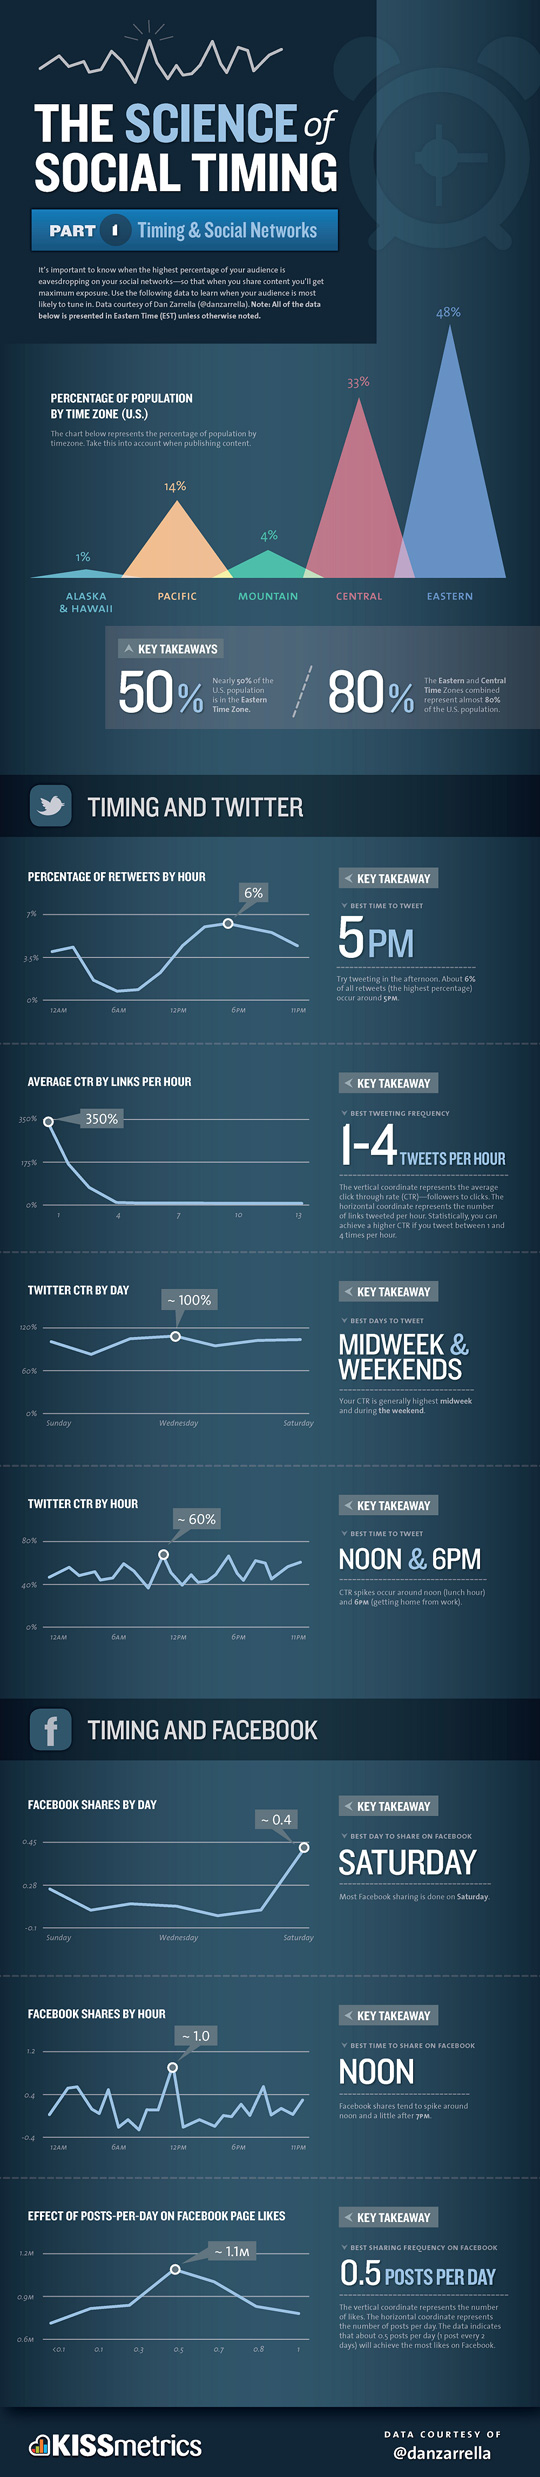 Social Timing on Twitter and Facebook - Click the image for bigger view